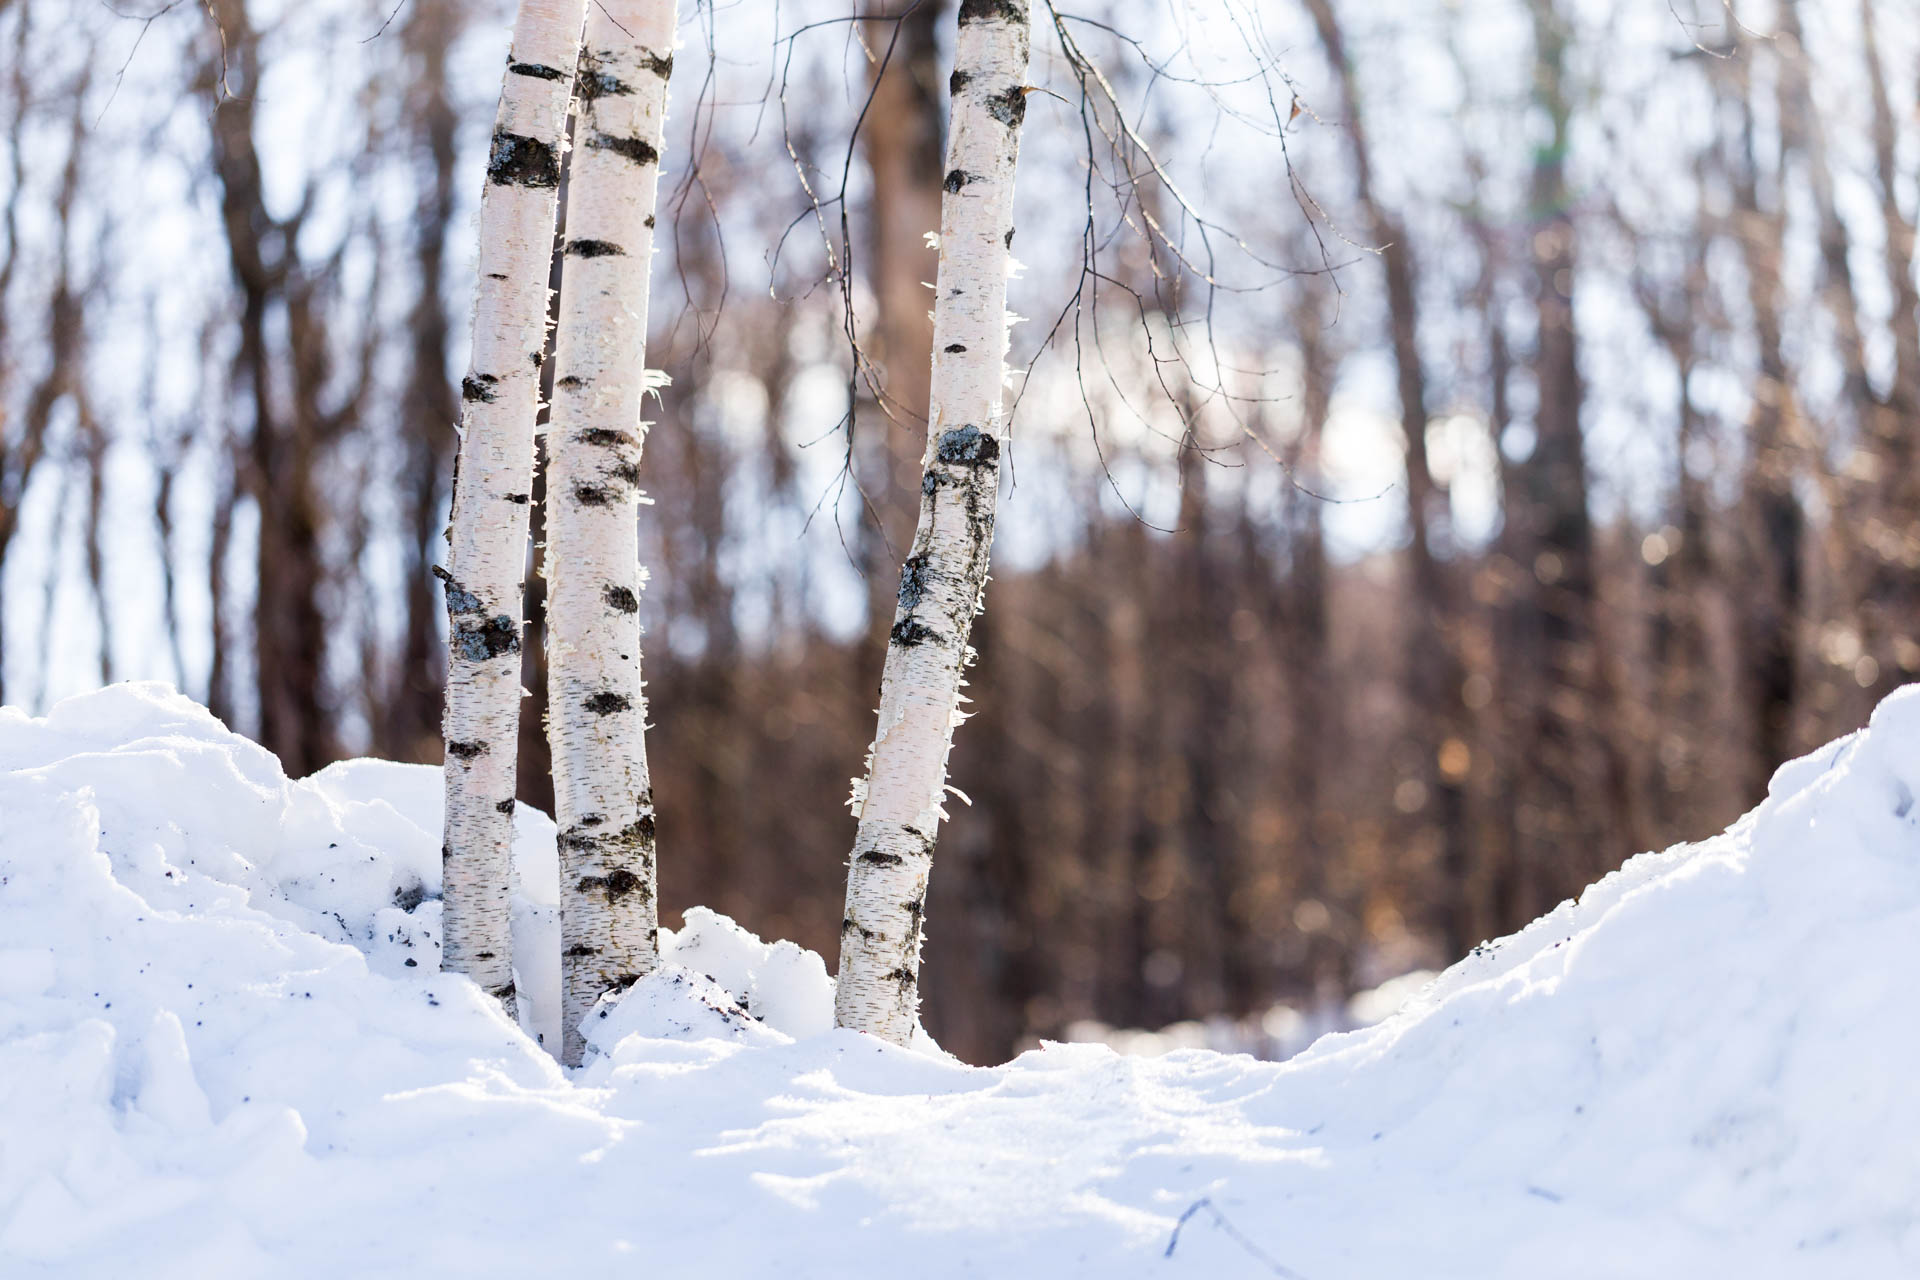 I didn't take many photos this time around, but I really loved this trio of birch trees and the light was just right. The background is too distracting for it to be a great image, though.